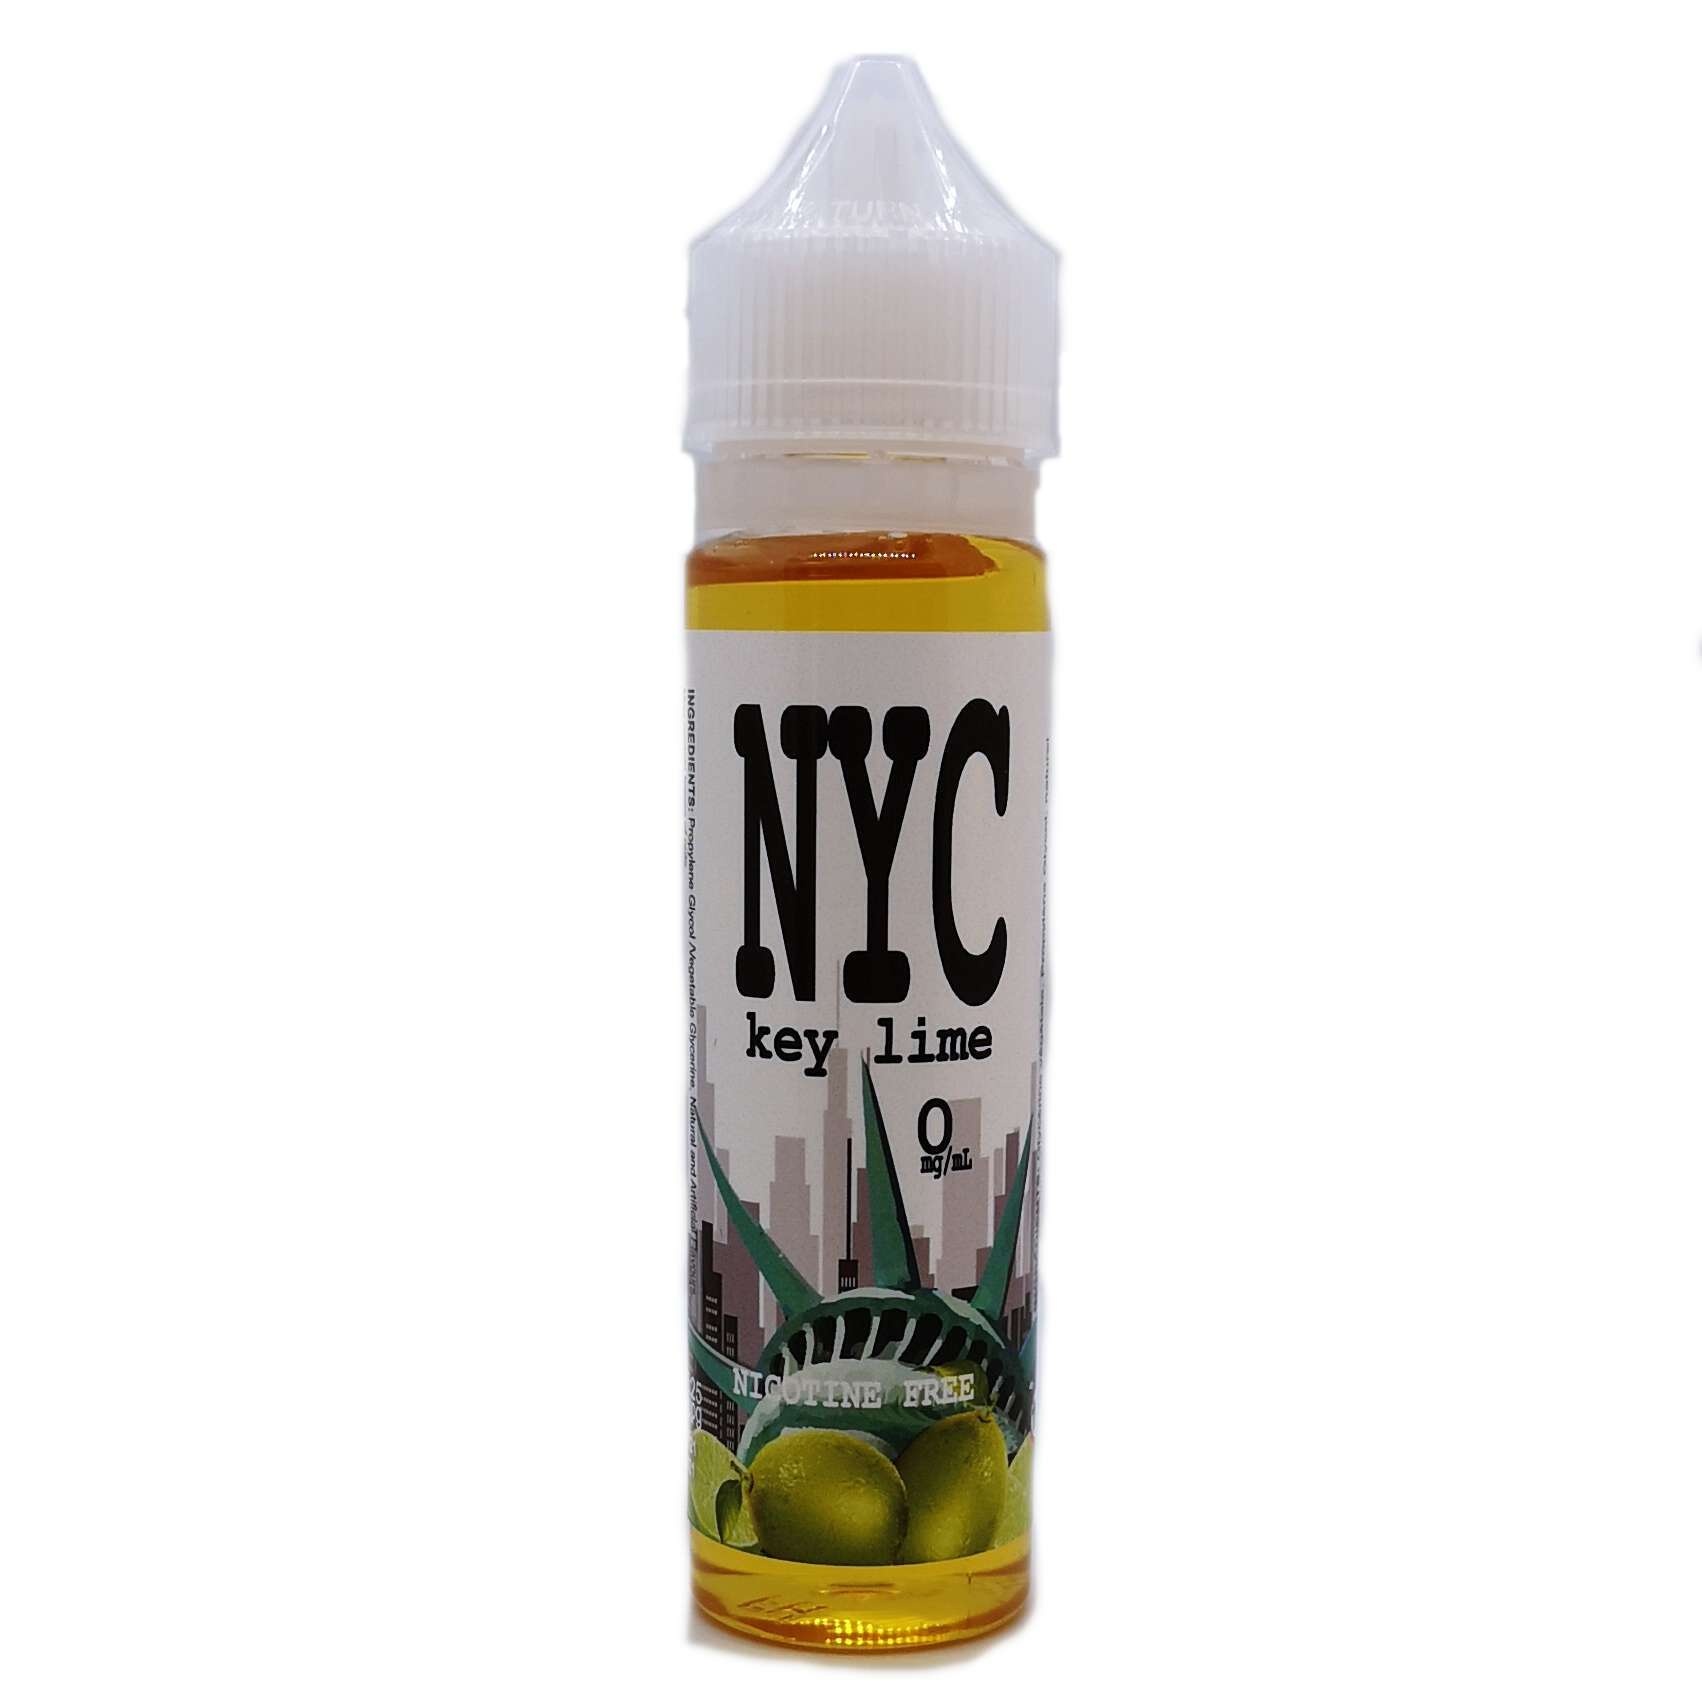 NYC-KEY-LIME-CHEESECAKE Amber's Bay Boy 60mL - Pomegranate